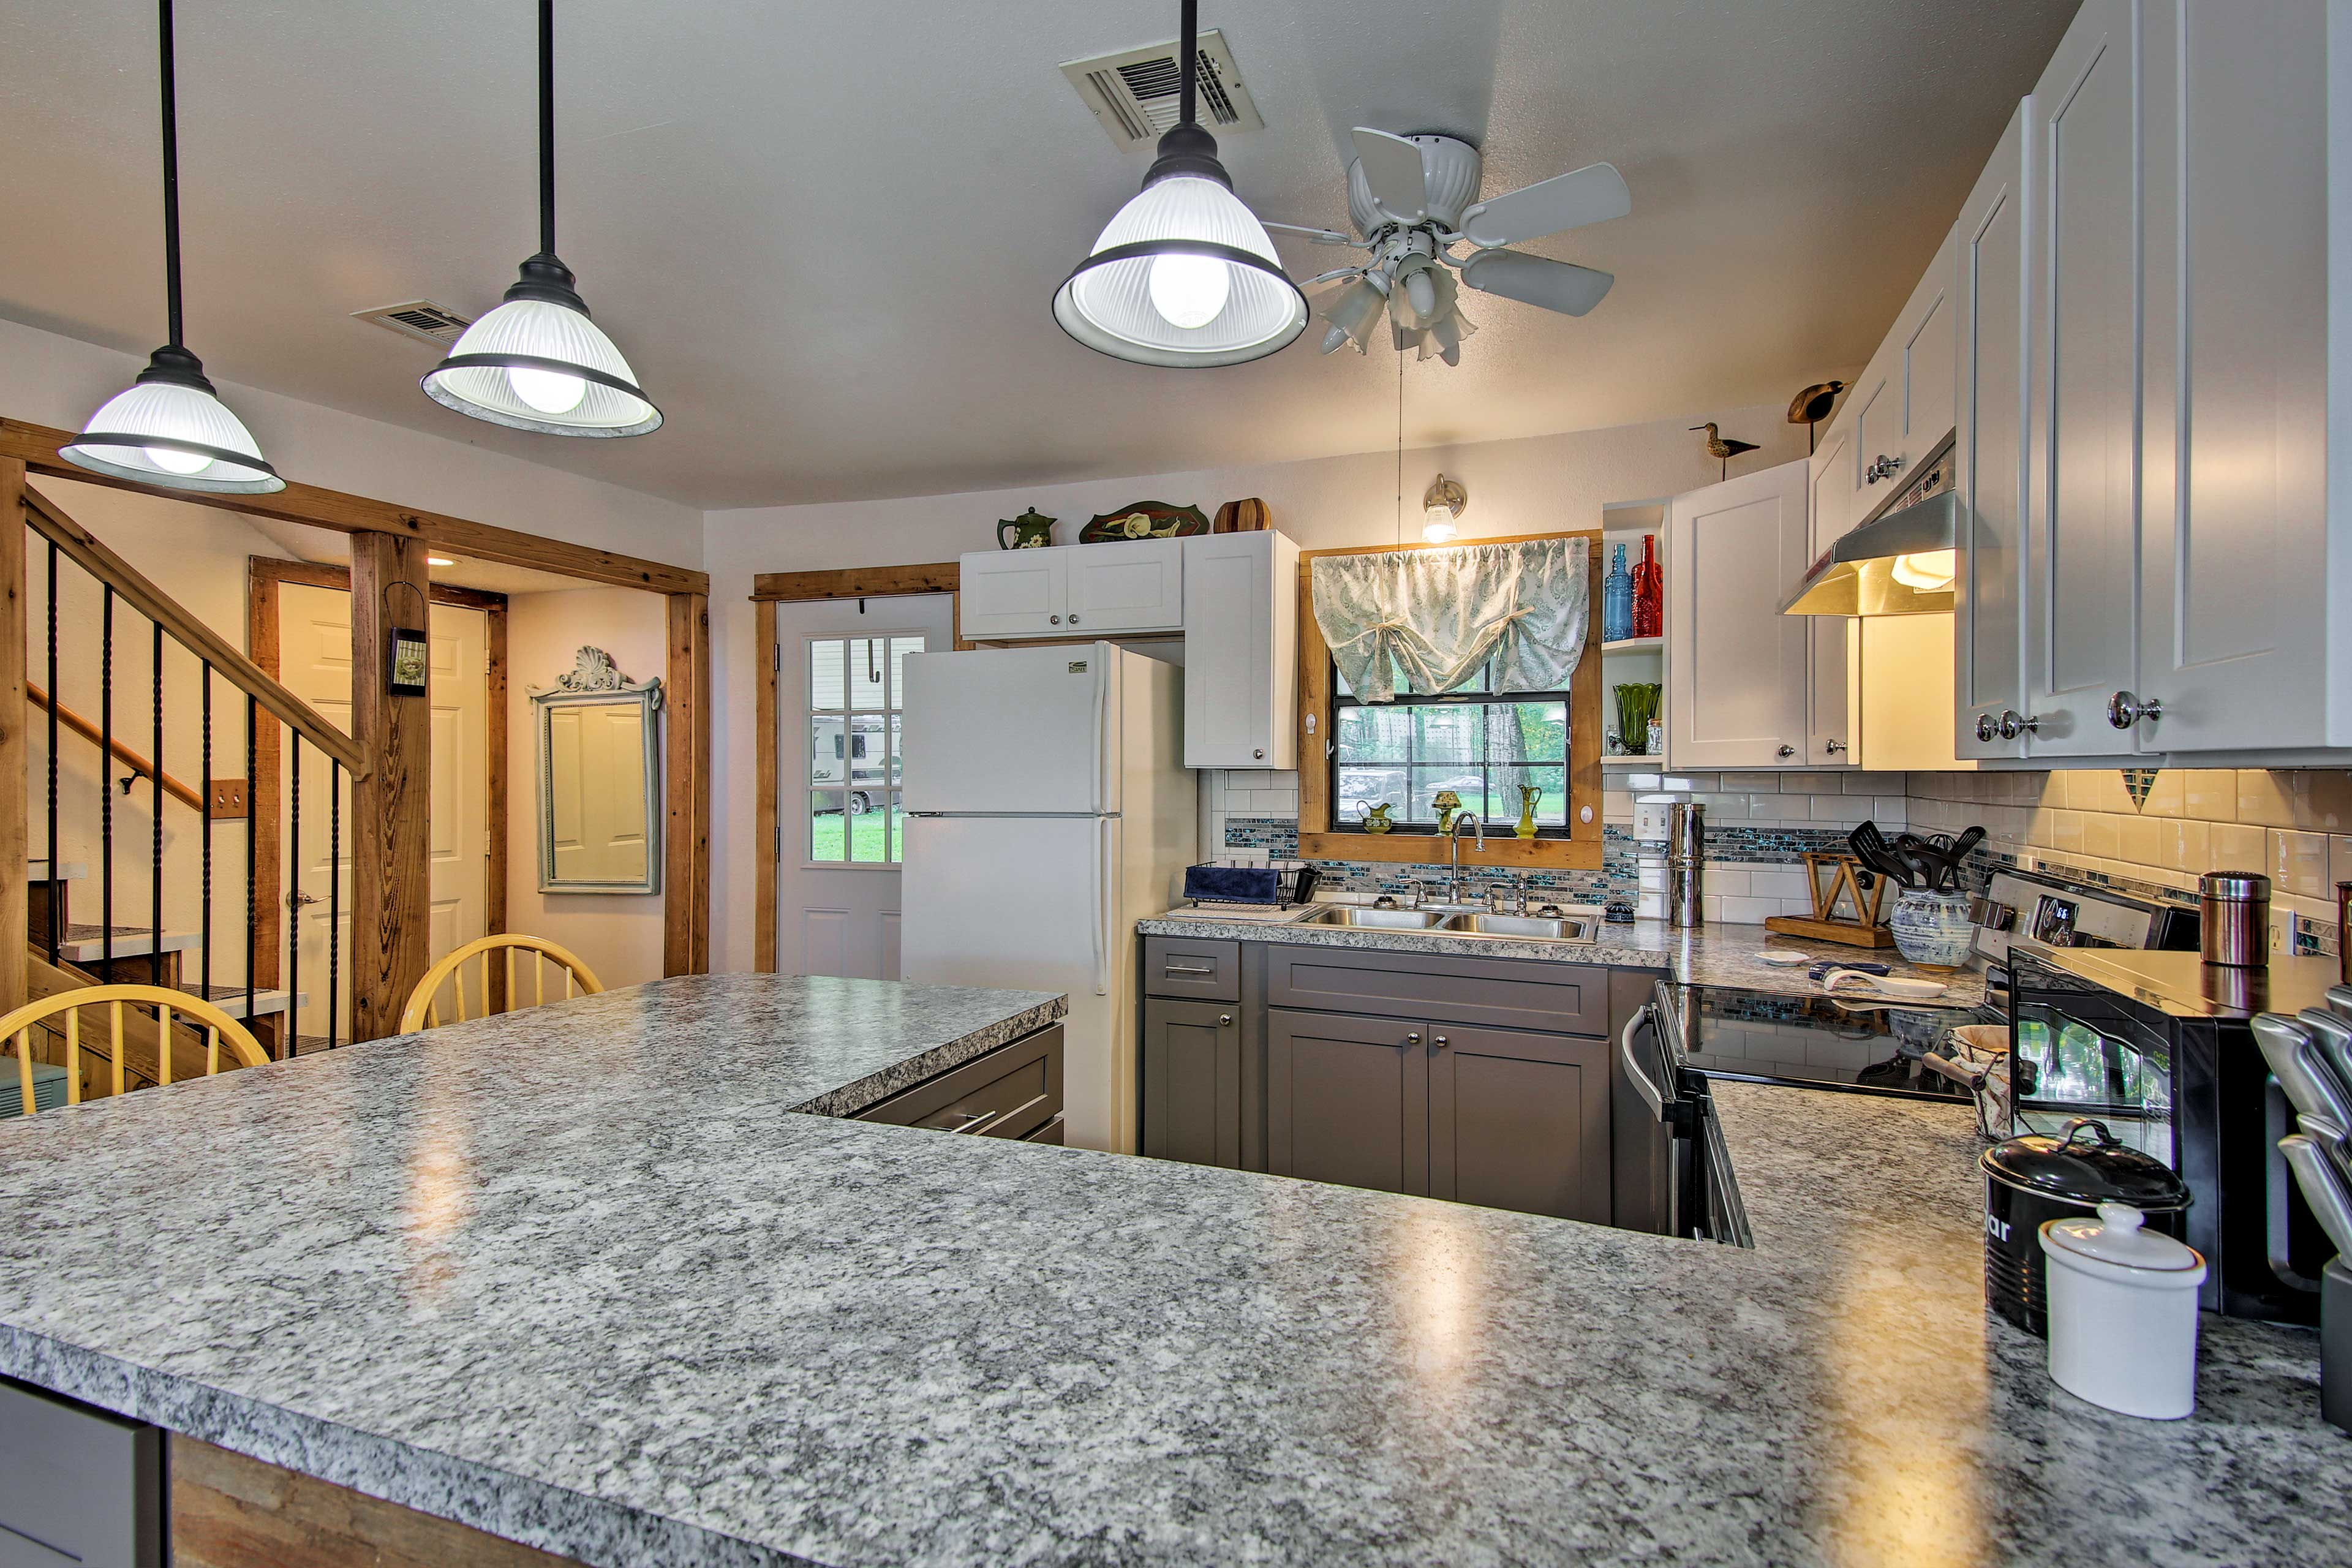 Pack a lunch for a day on the water on the large countertops.